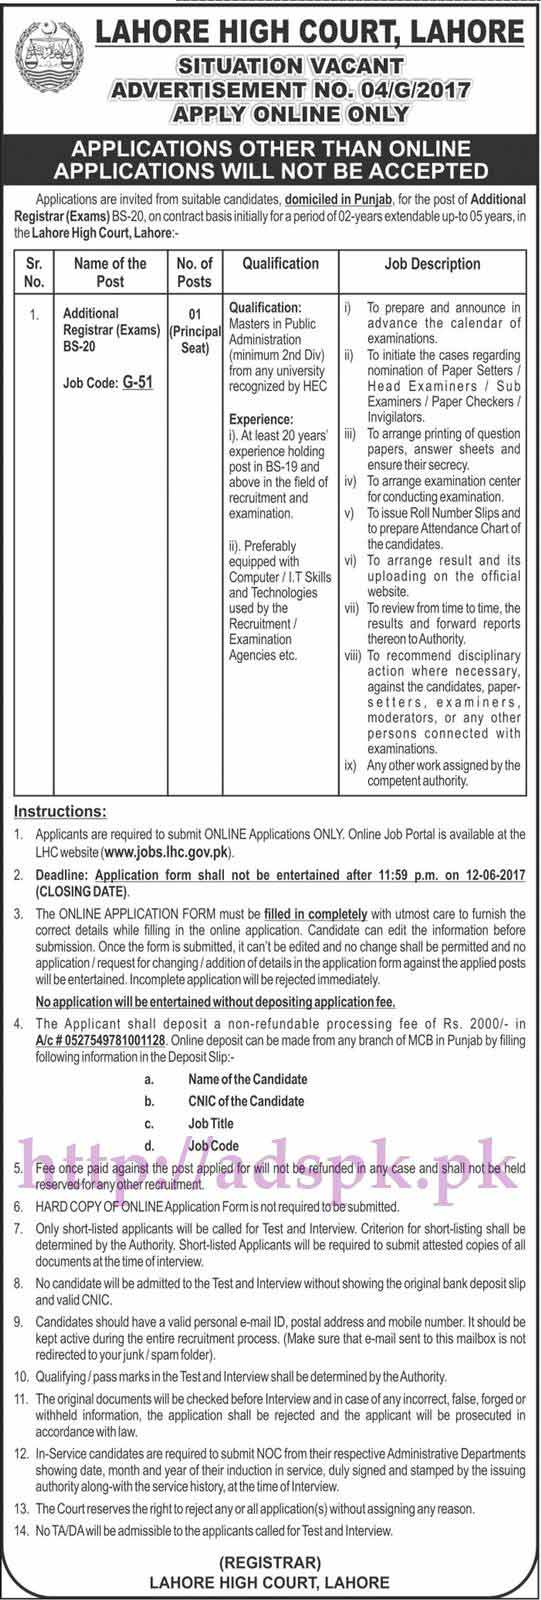 Jobs Lahore High Court Lahore Jobs Ad No.04/G/2017 Written